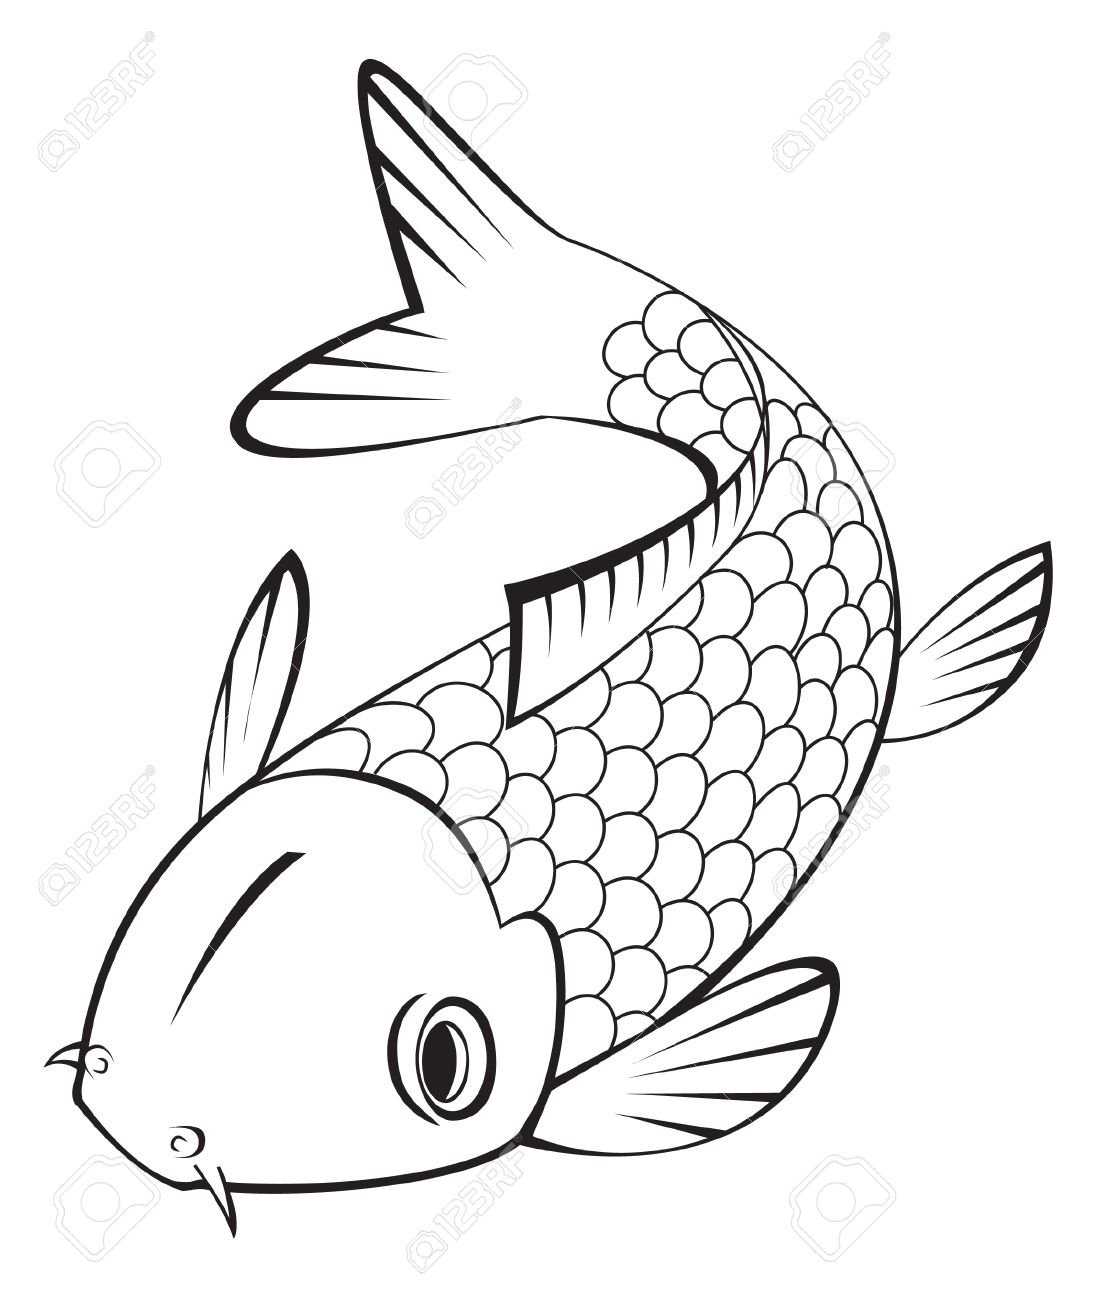 koi fish outline drawing at getdrawings com free for Tao Yin and Yang Black and White Black and White Ying Yang